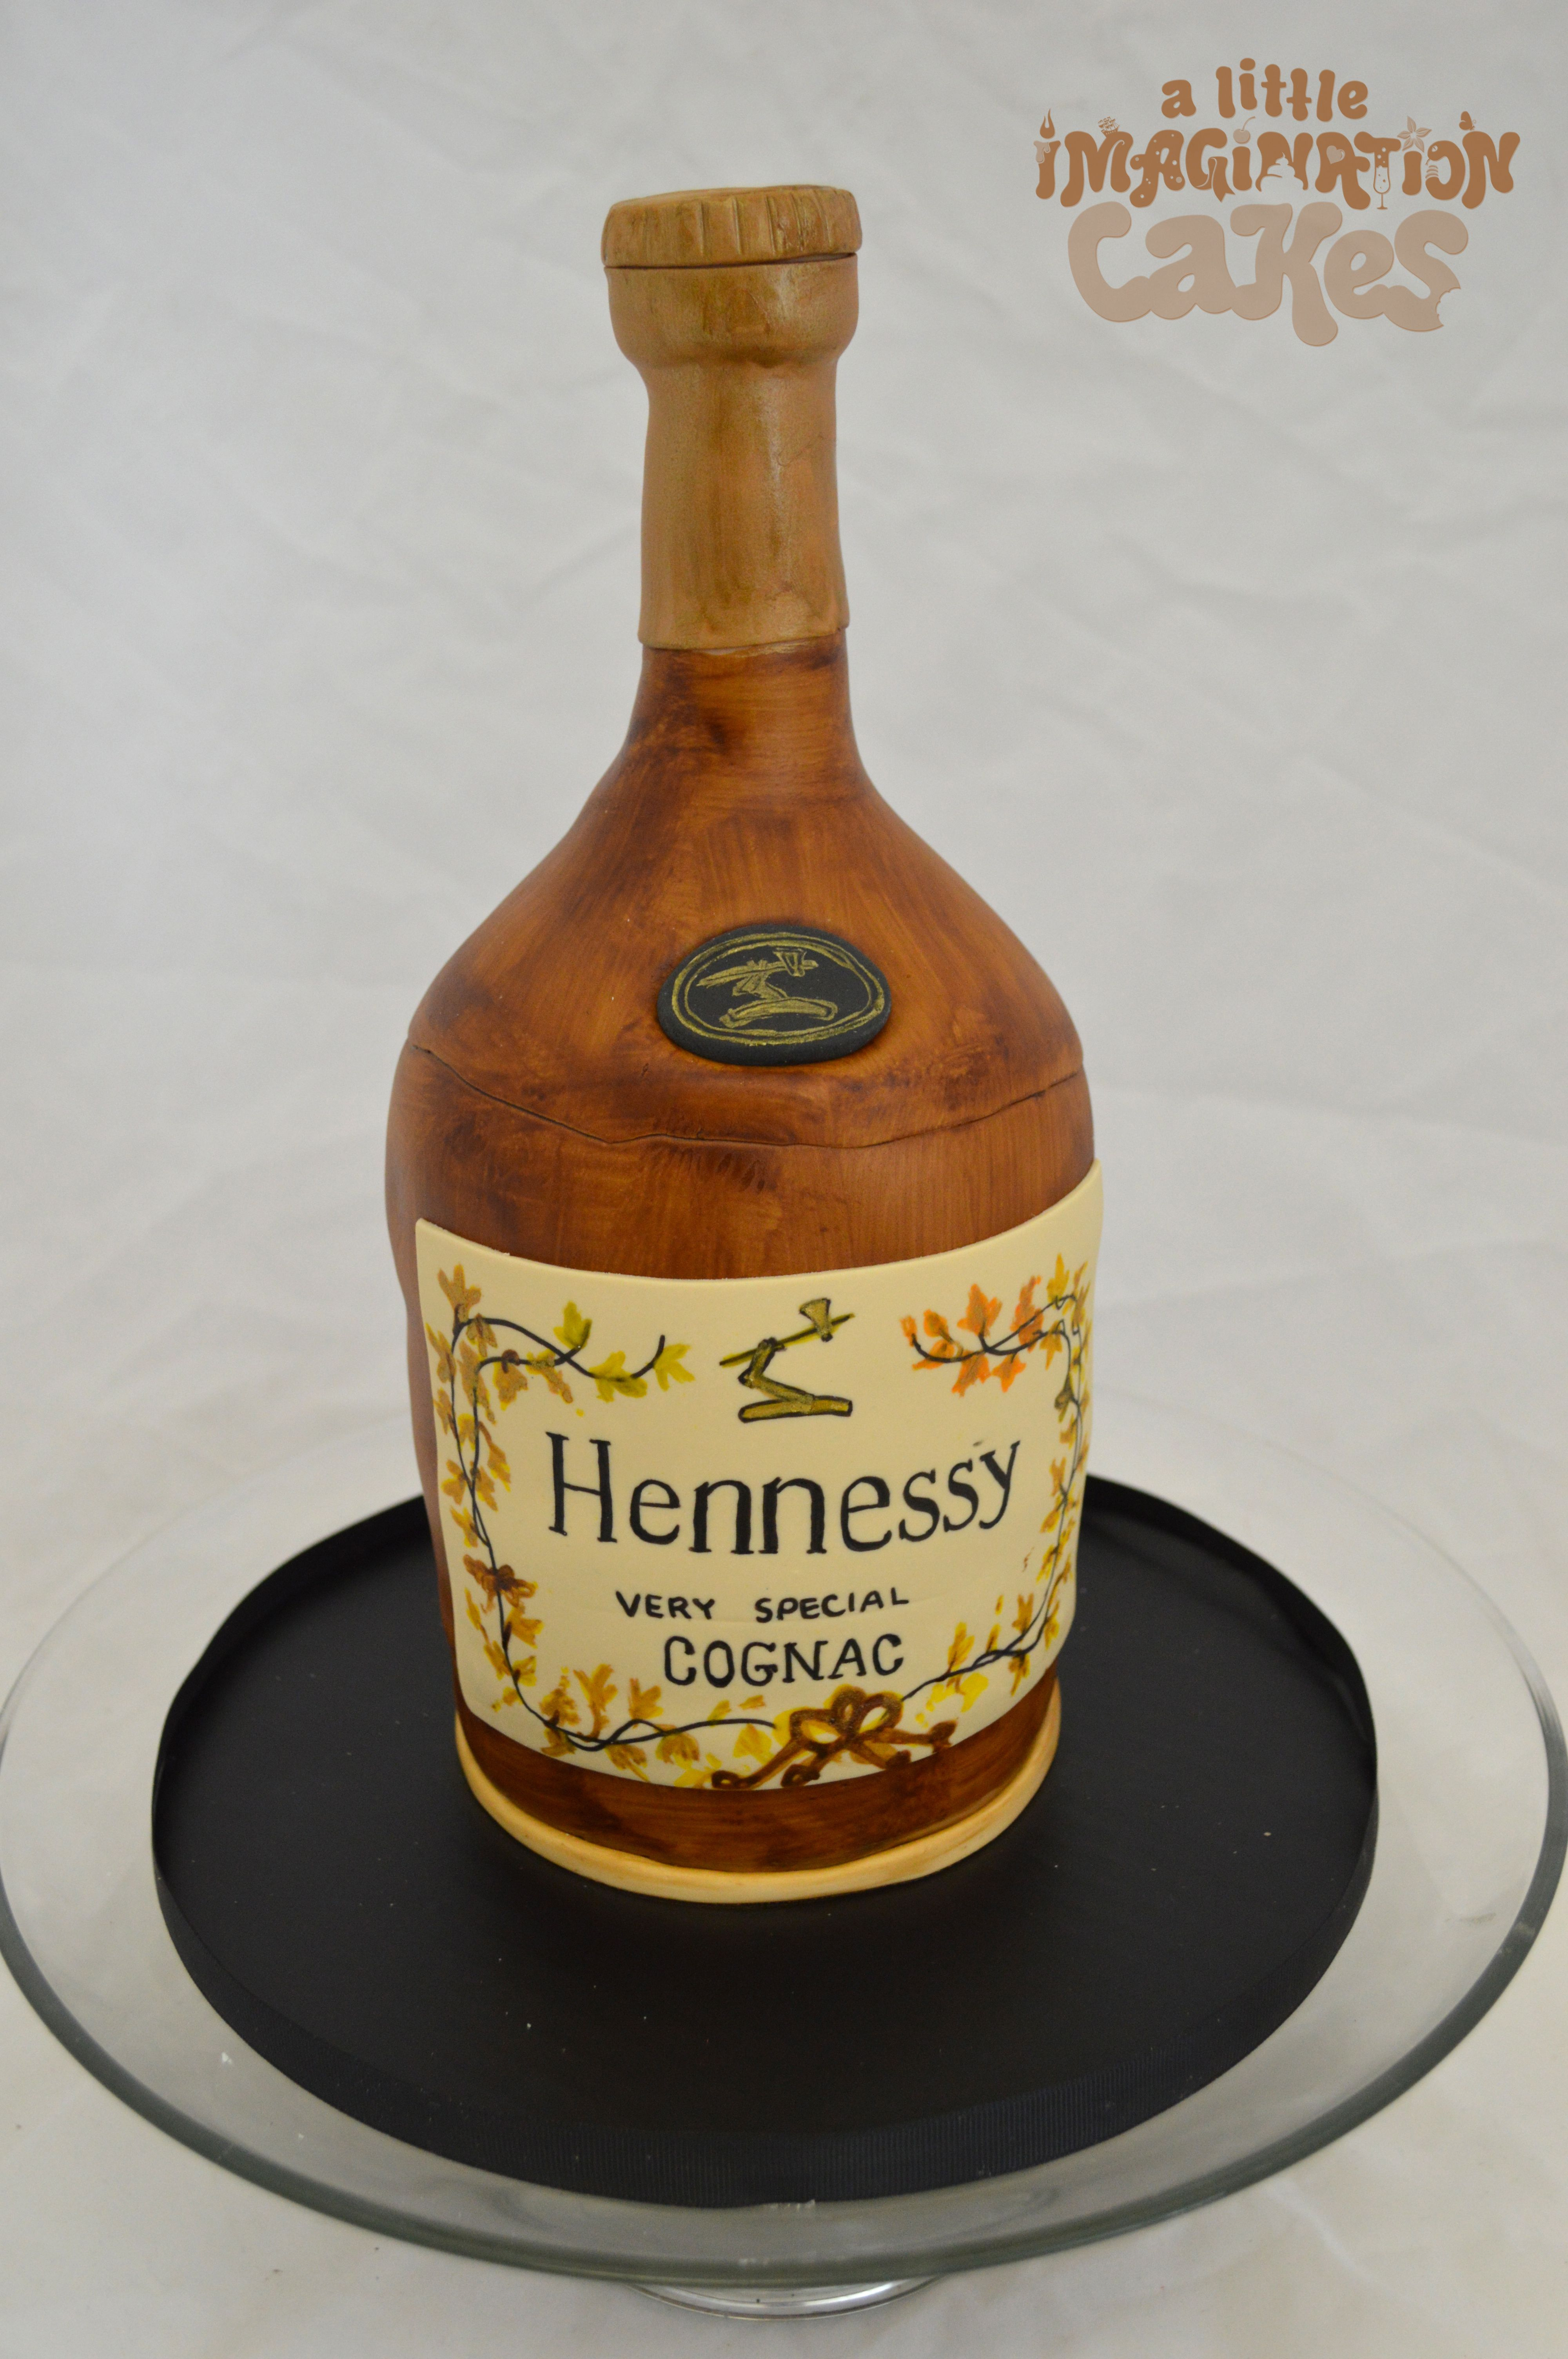 Hennessy Cognac Bottle Birthday Cake By A Little Imagination Cakes